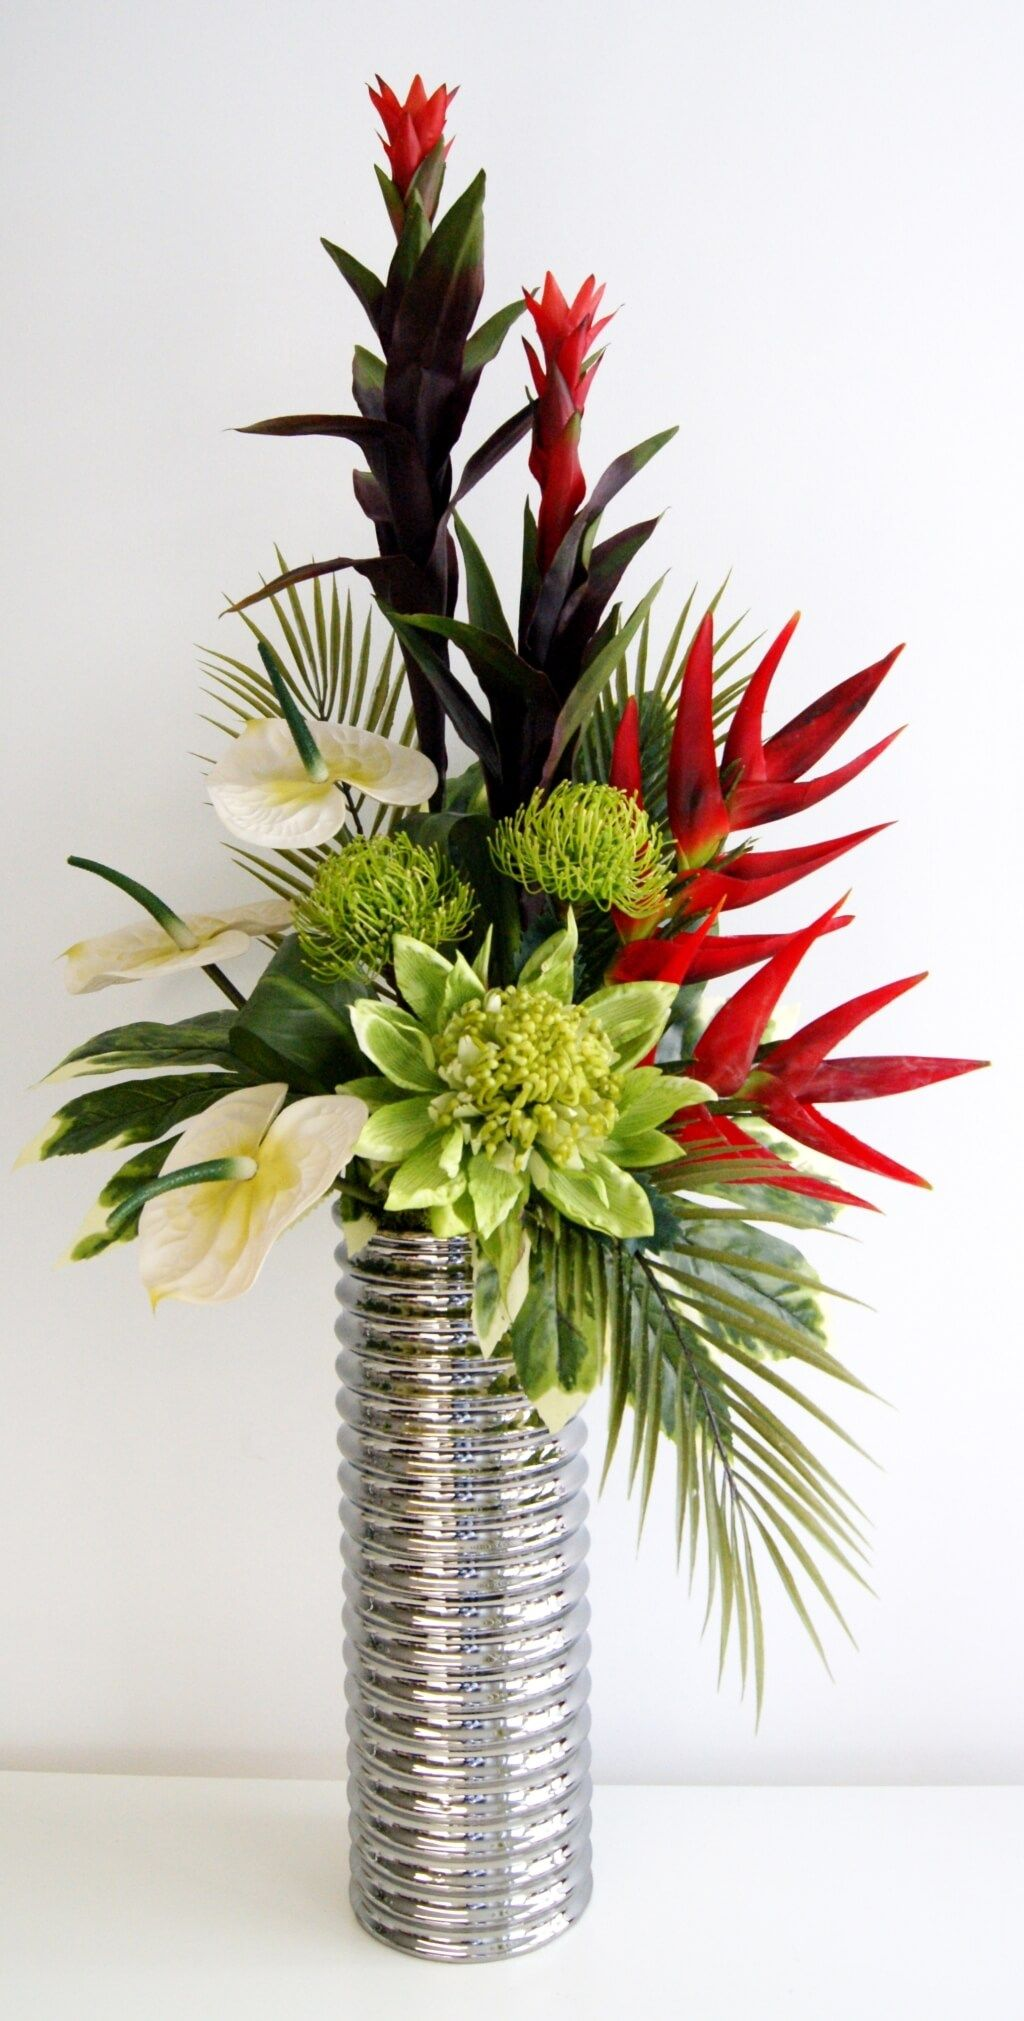 Home decoration fabulous red artificial floral arrangements with ideas original to decorate your table this season beautiful faux flower arrangements for your inspiration table centerpiece using red and green artificial reviewsmspy